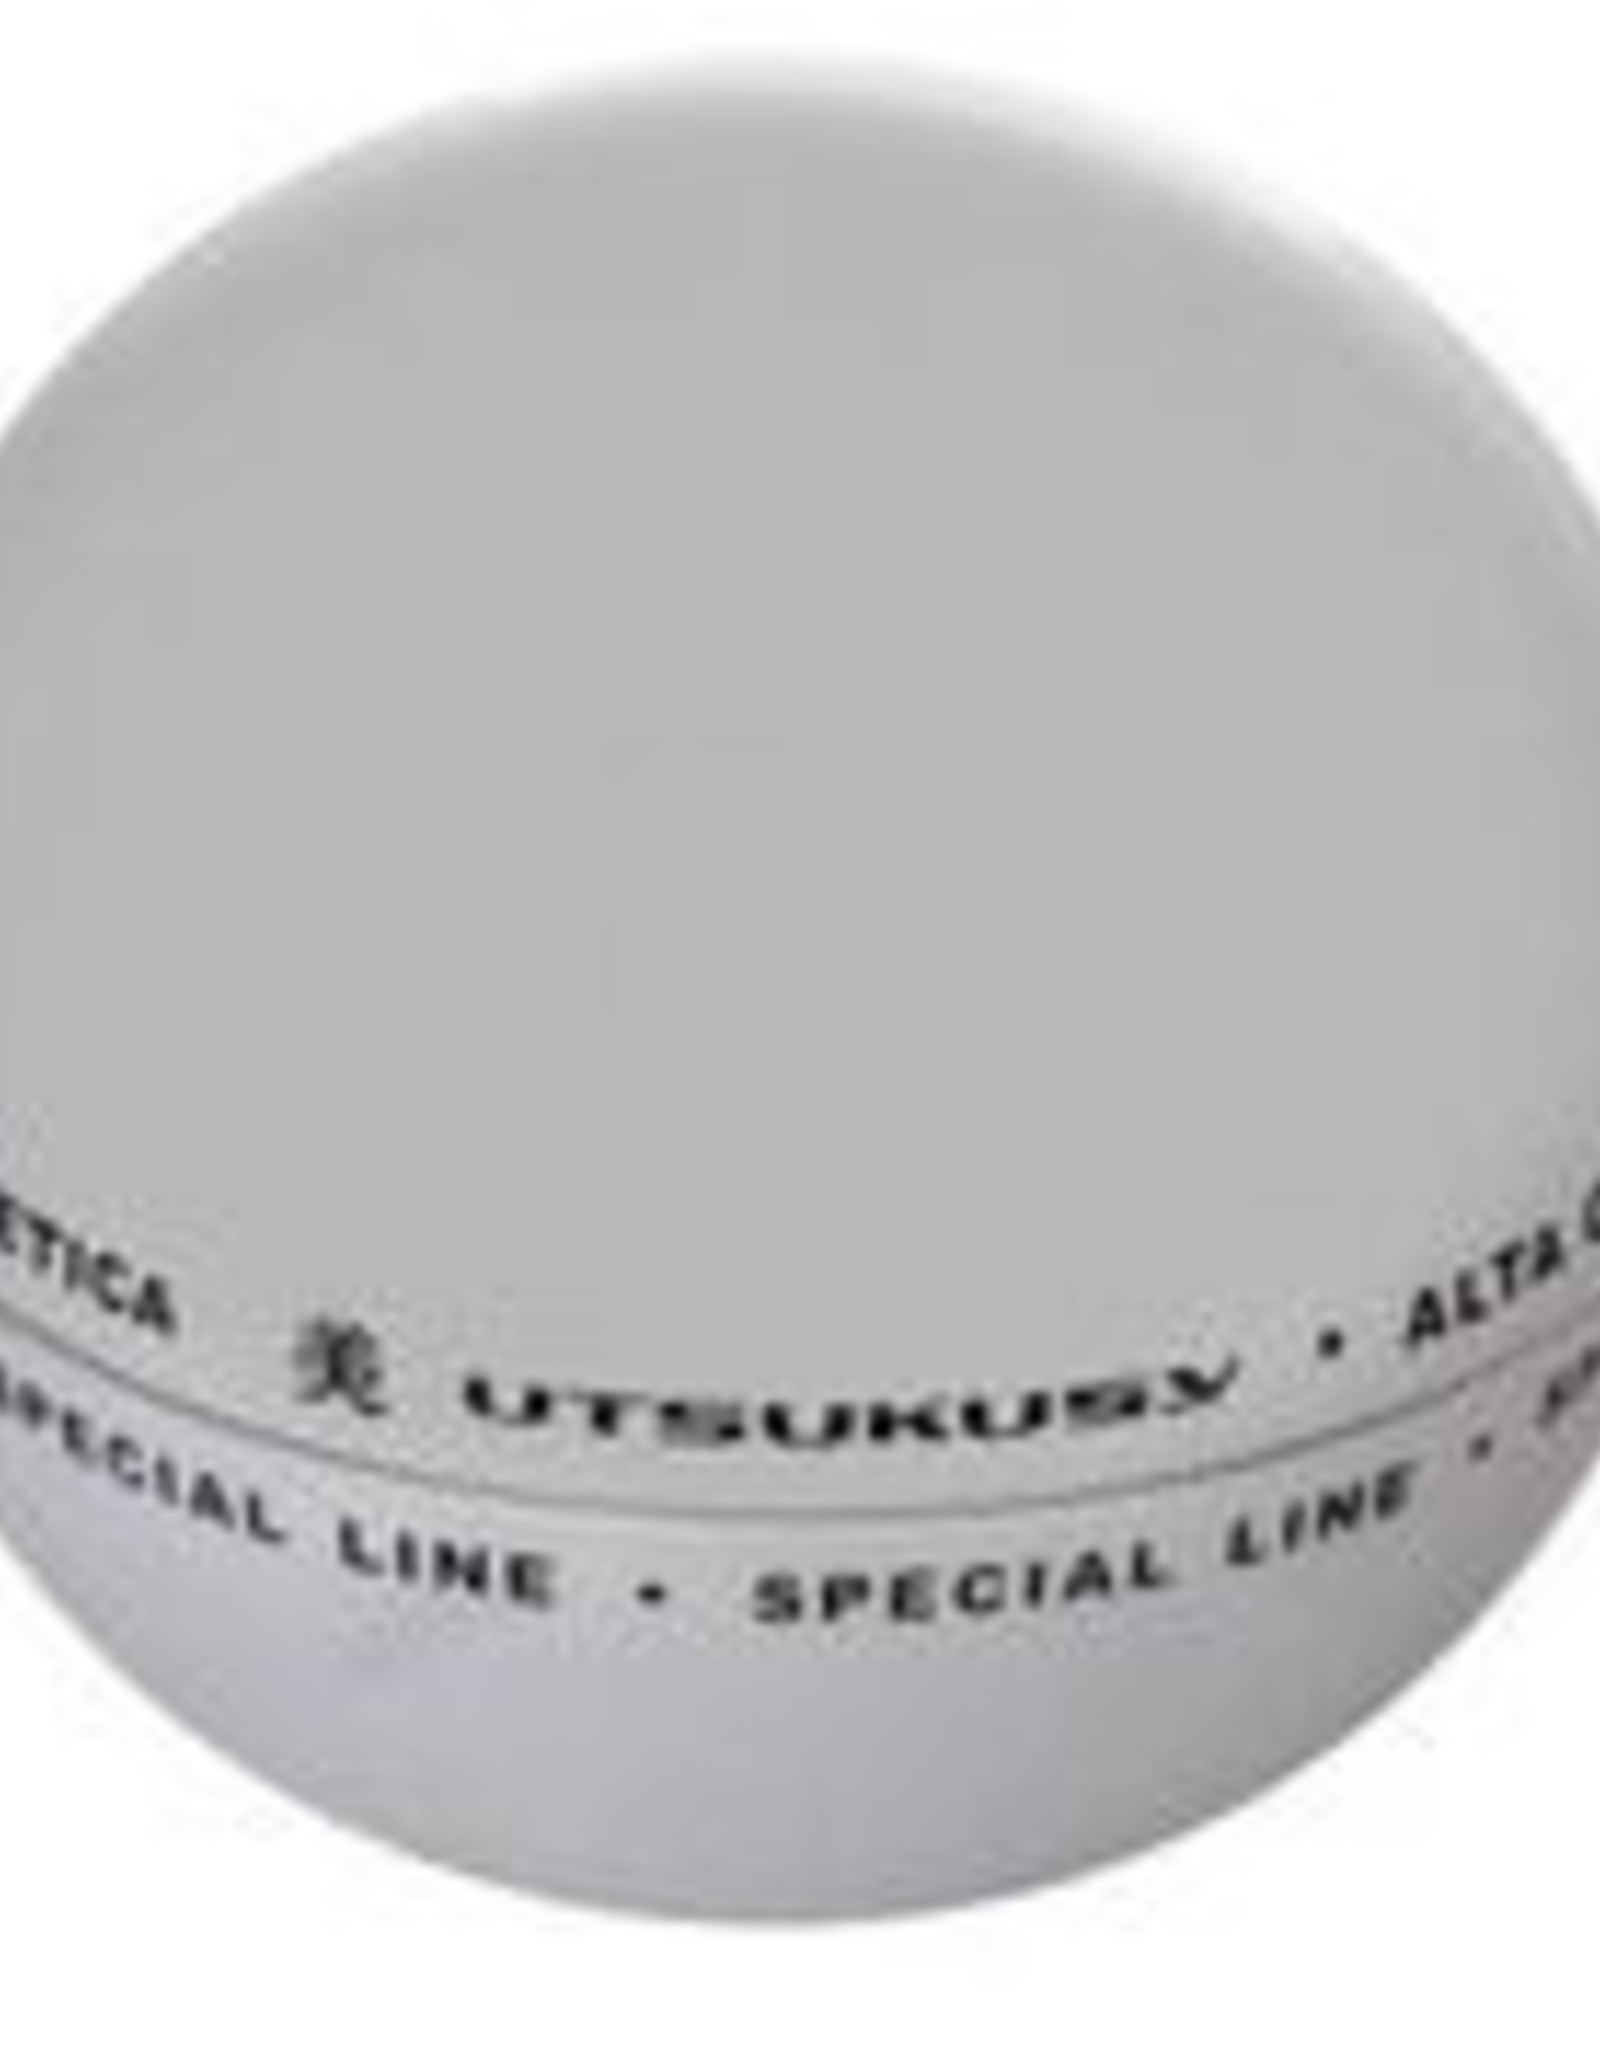 Utsukusy Resilience creme